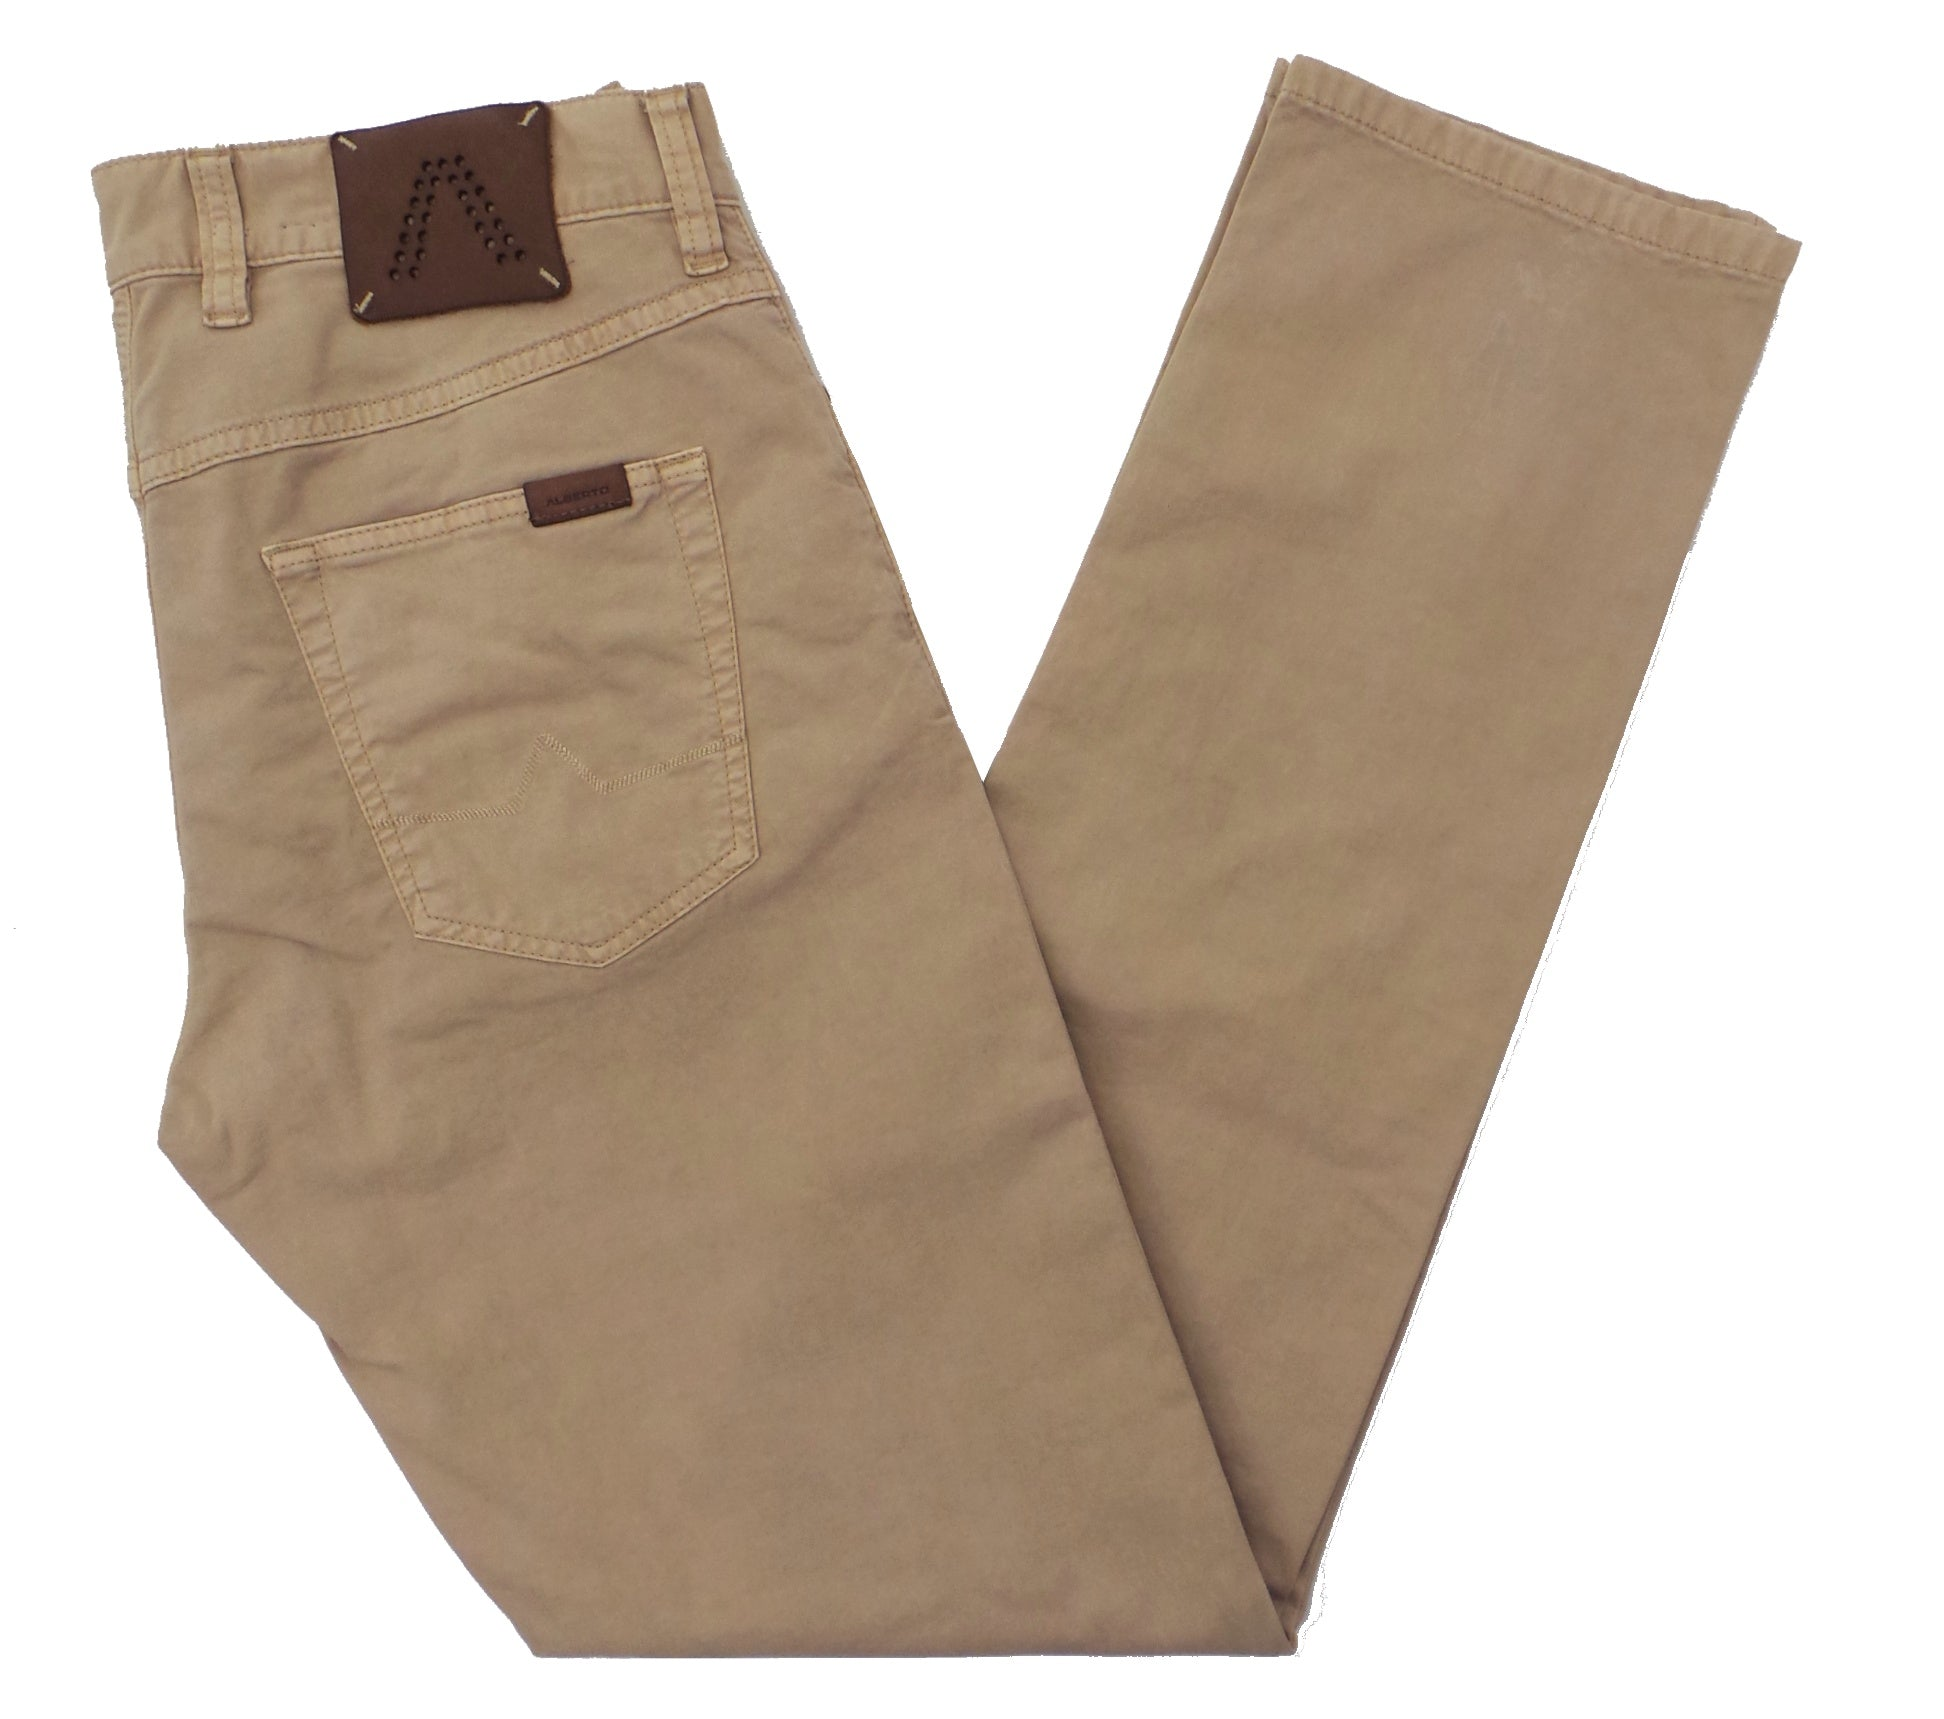 Alberto Pipe 1903 Regular Fit Broken Twill 5 Pocket Pants